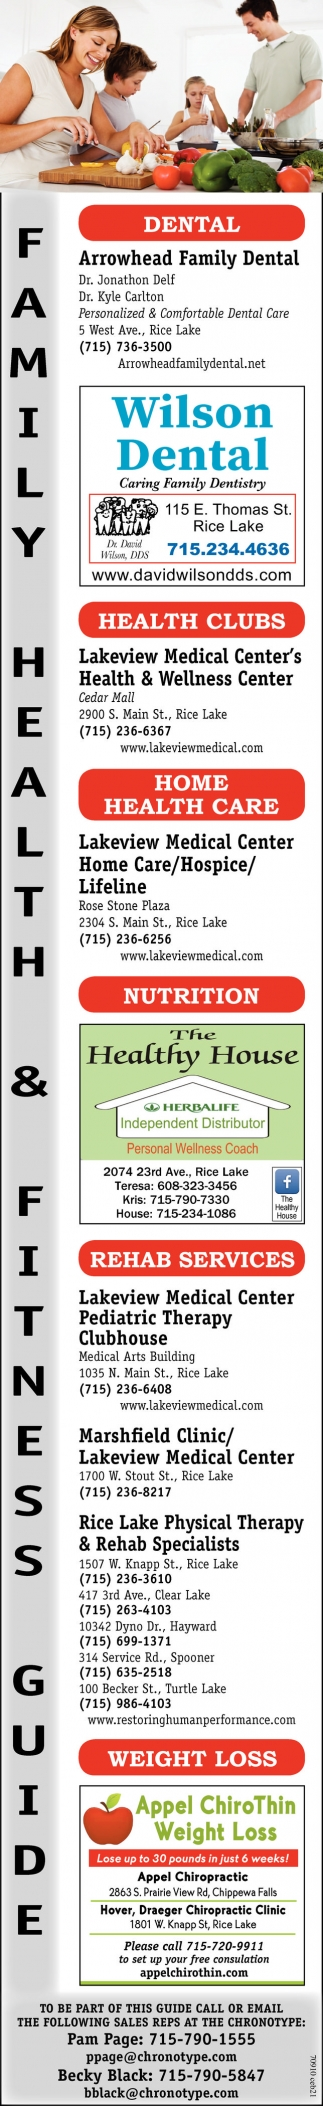 Family Health & Fitness Guide